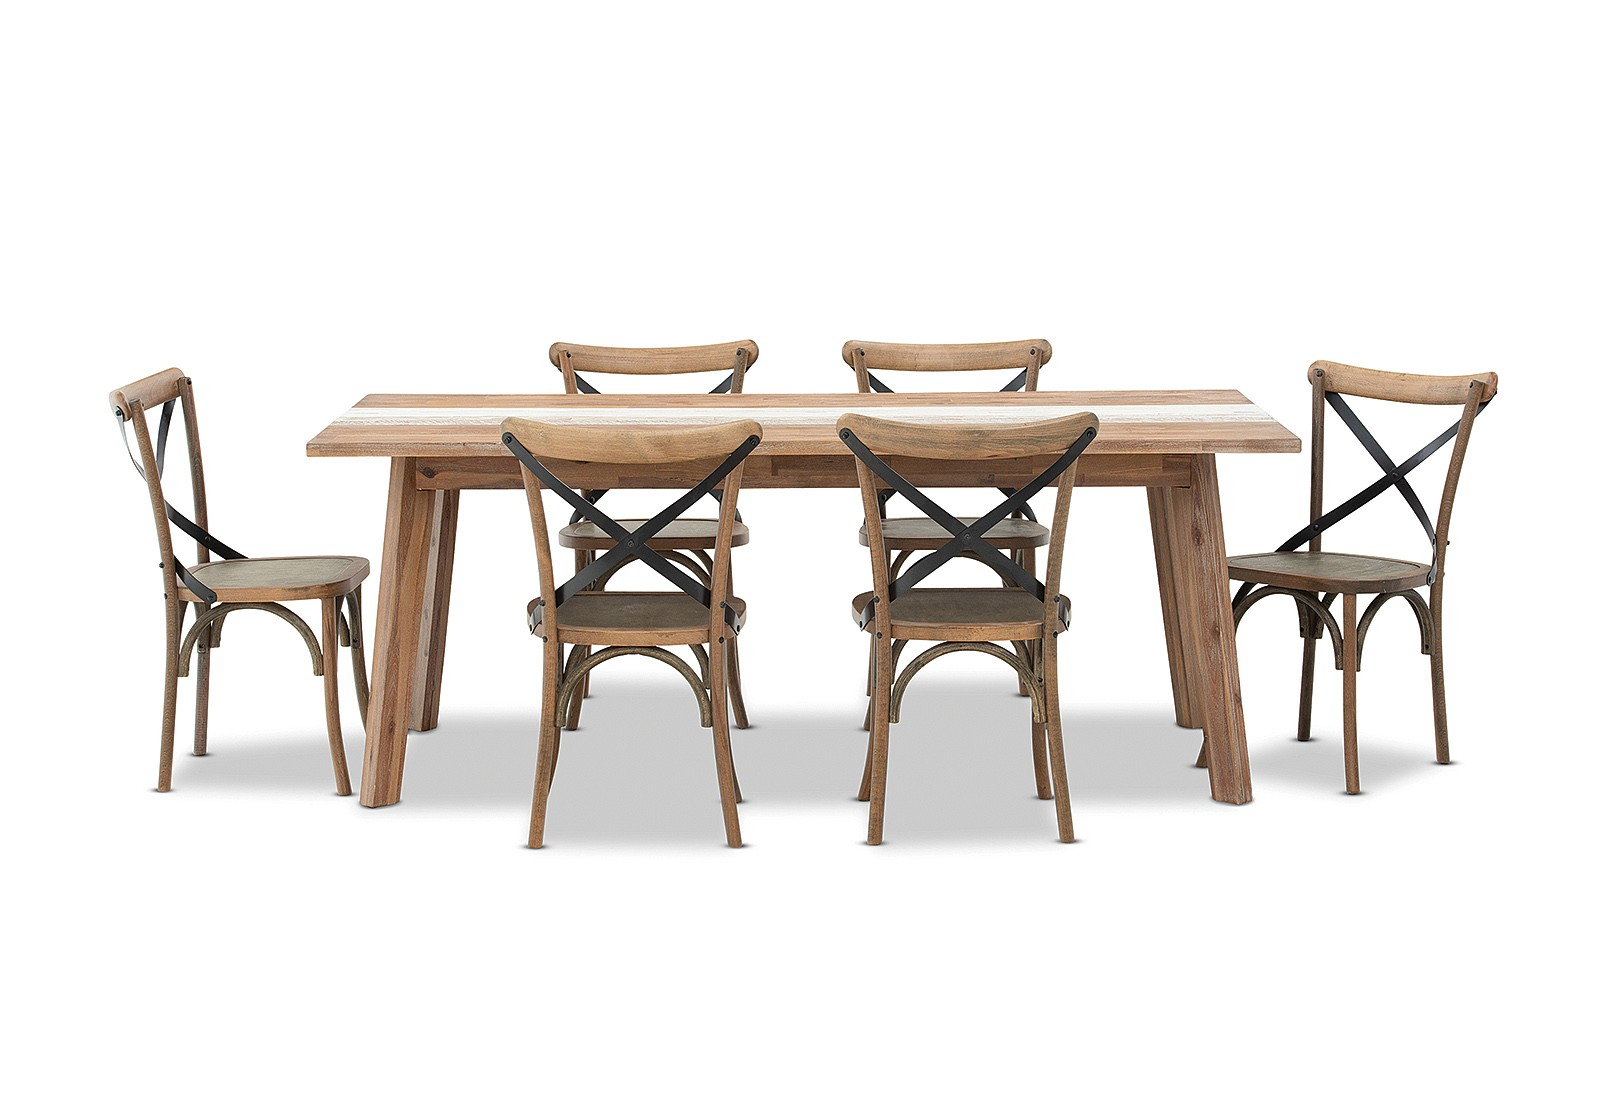 7 Piece Dining Sets | Amart Furniture With Most Up To Date West Hill Family Table 3 Piece Dining Sets (View 10 of 20)